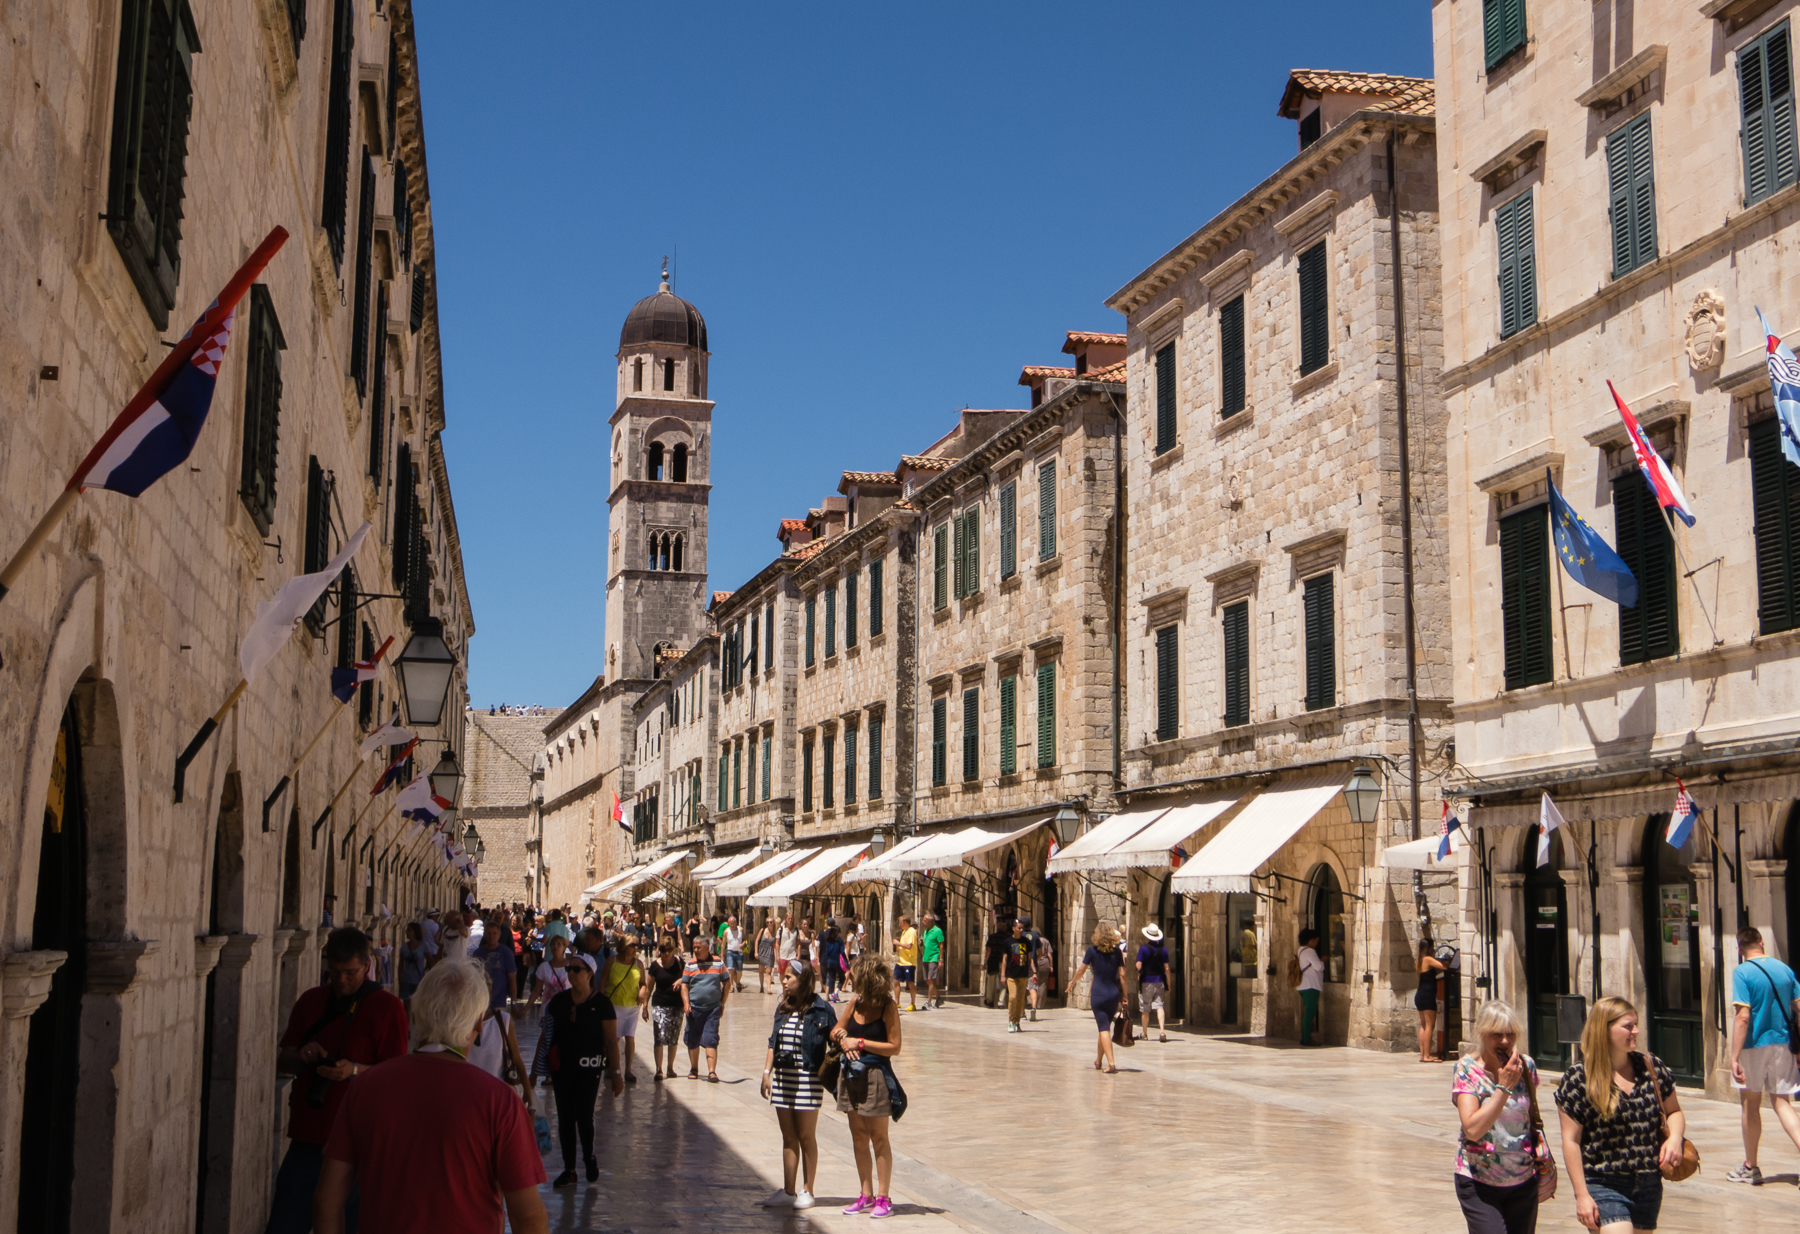 oldtown croatia ways street - photo #12